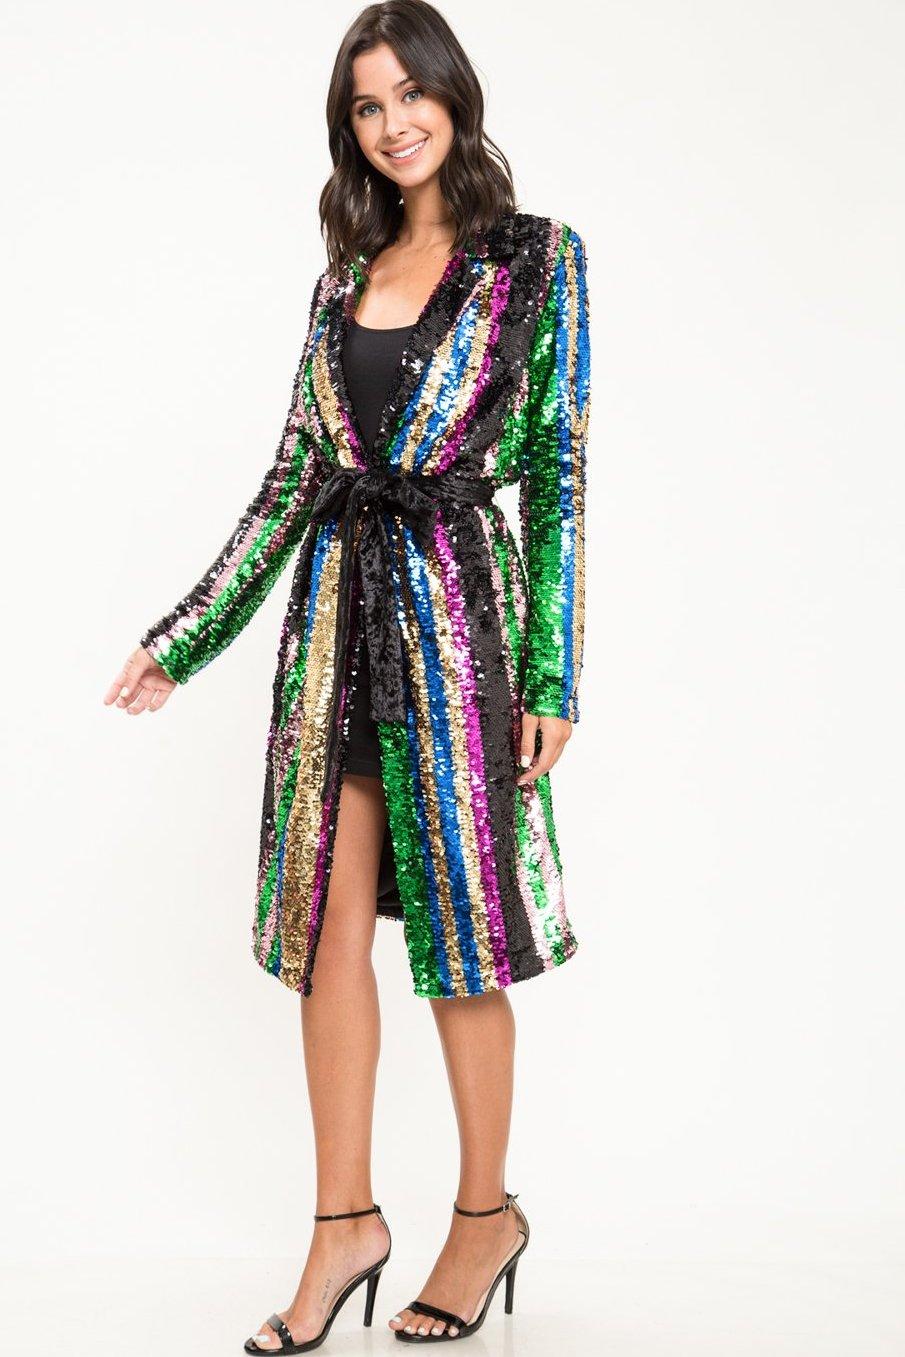 Super Pop Stripe Sequin Blazer - Geegeebae - L'atiste - Front view